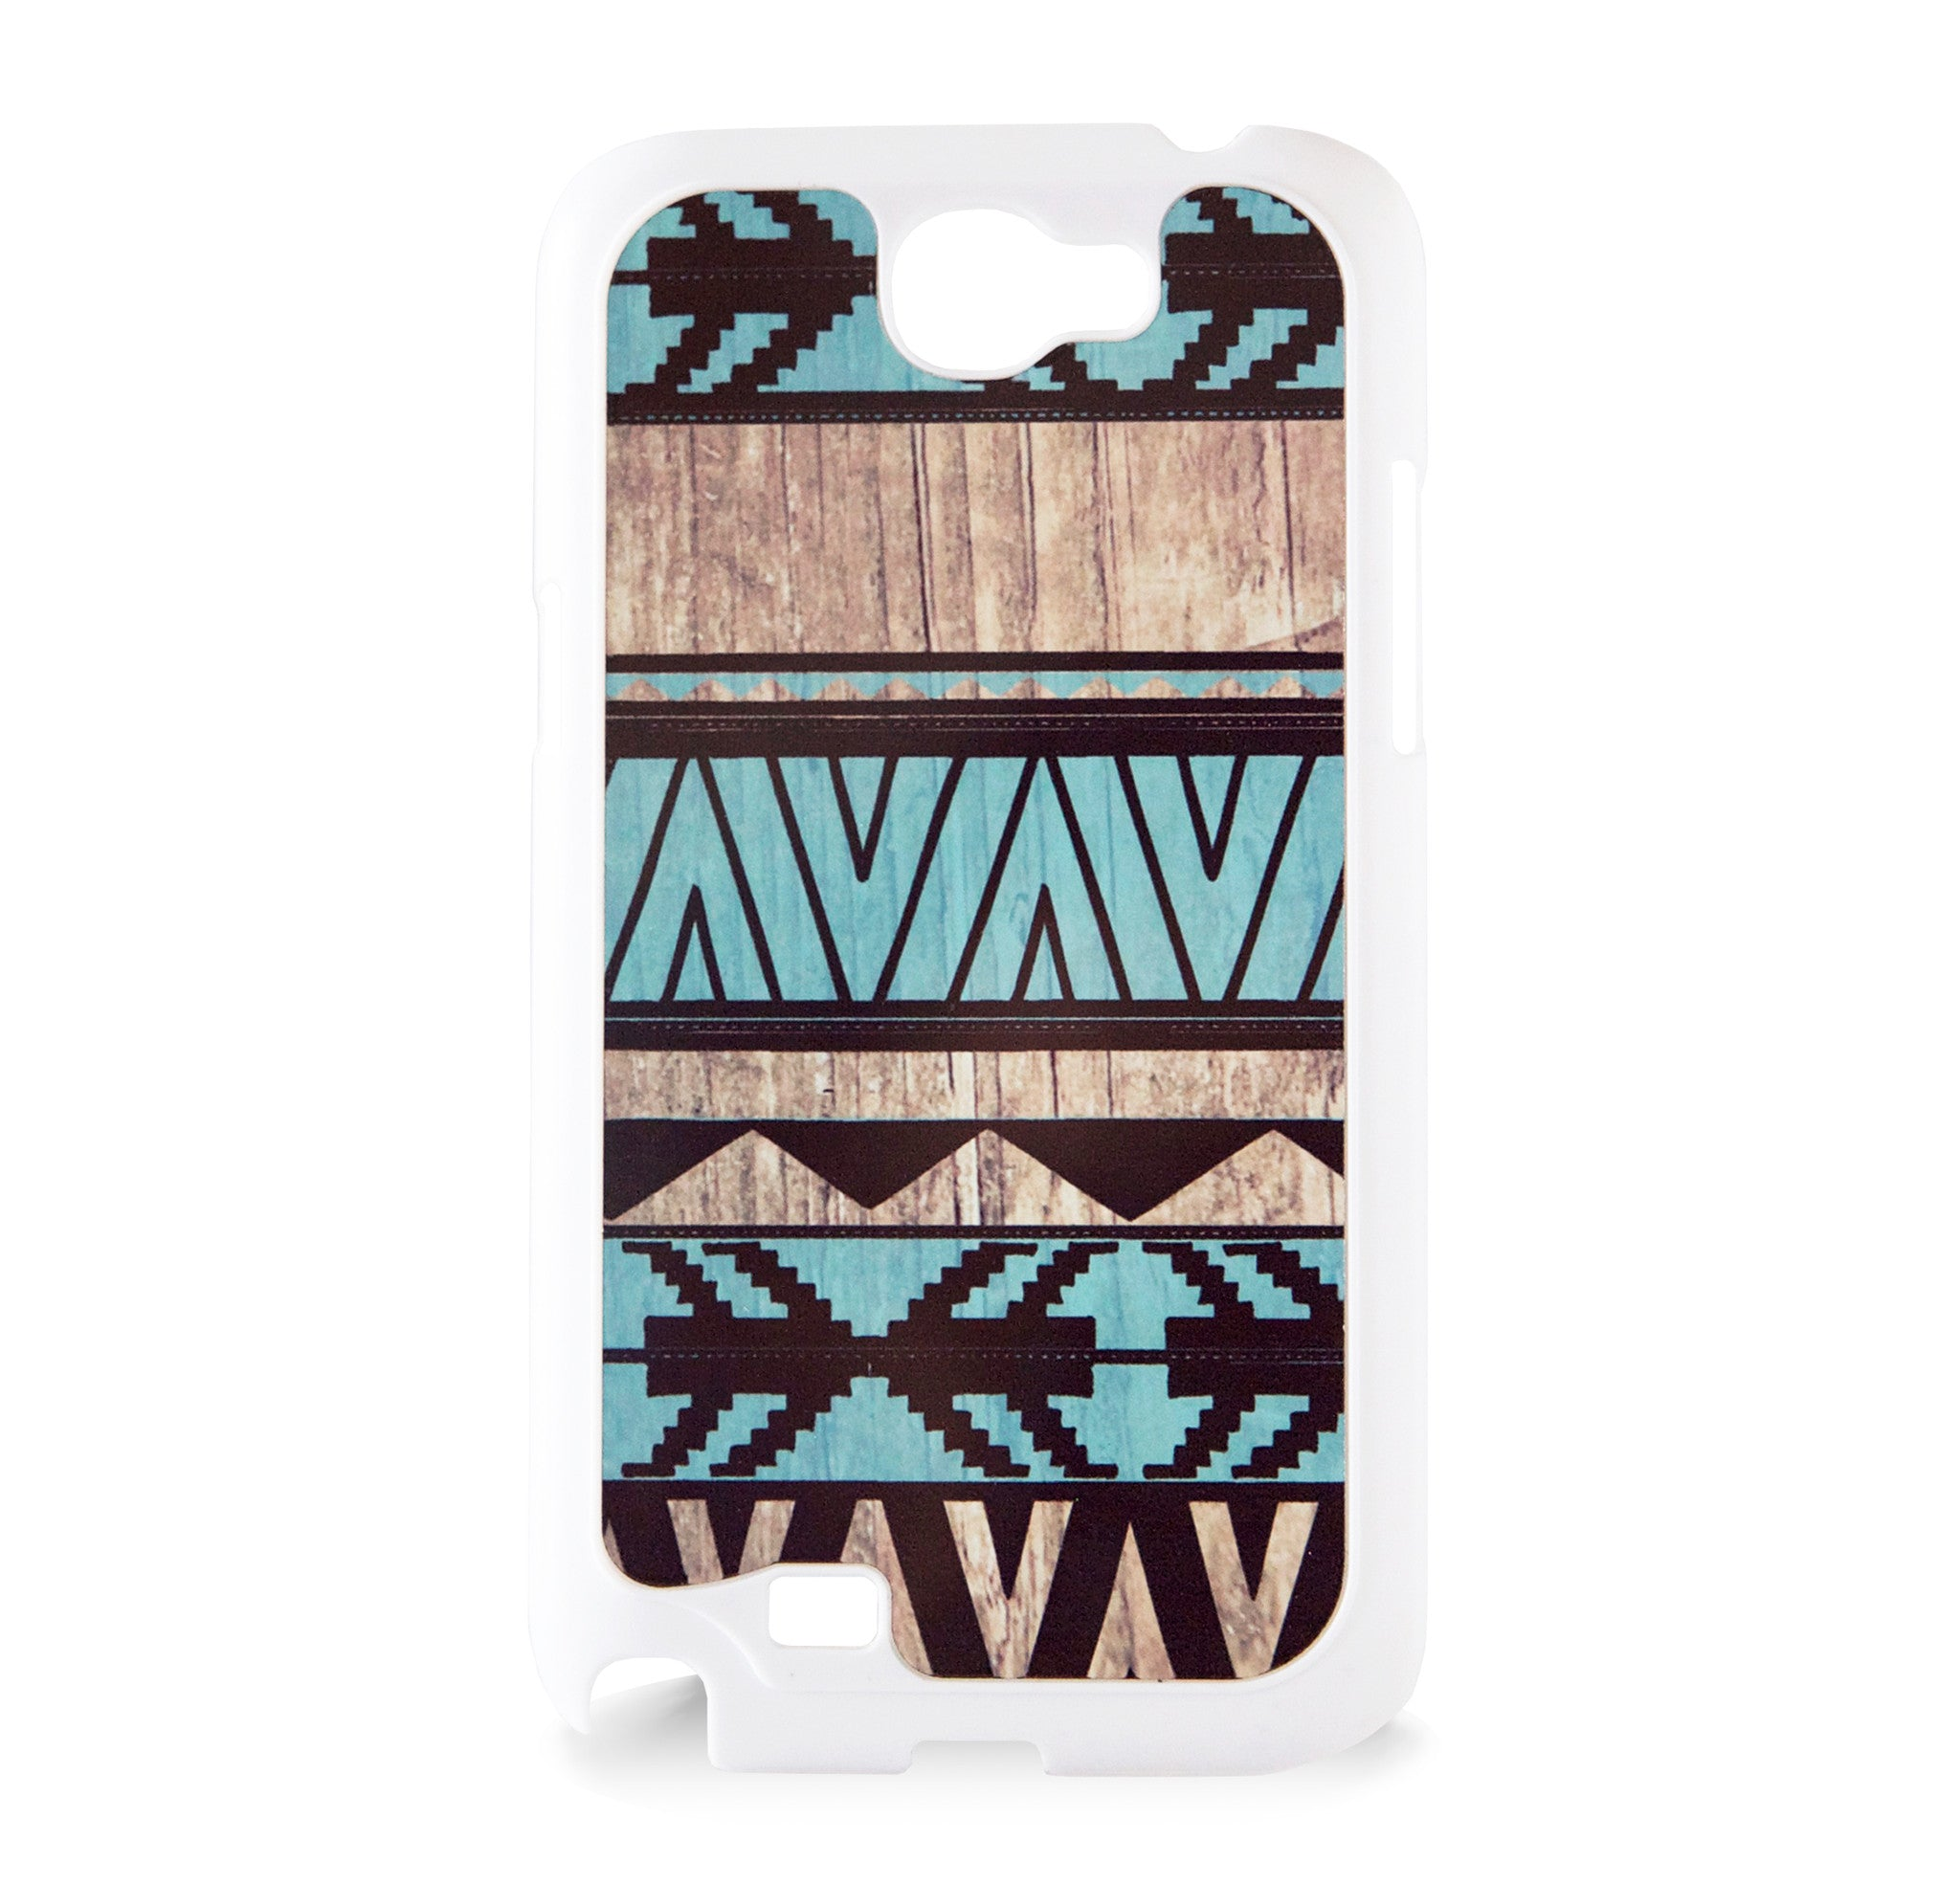 GALAXY NOTE 2 AZTEC ON WOOD PRINT MINT